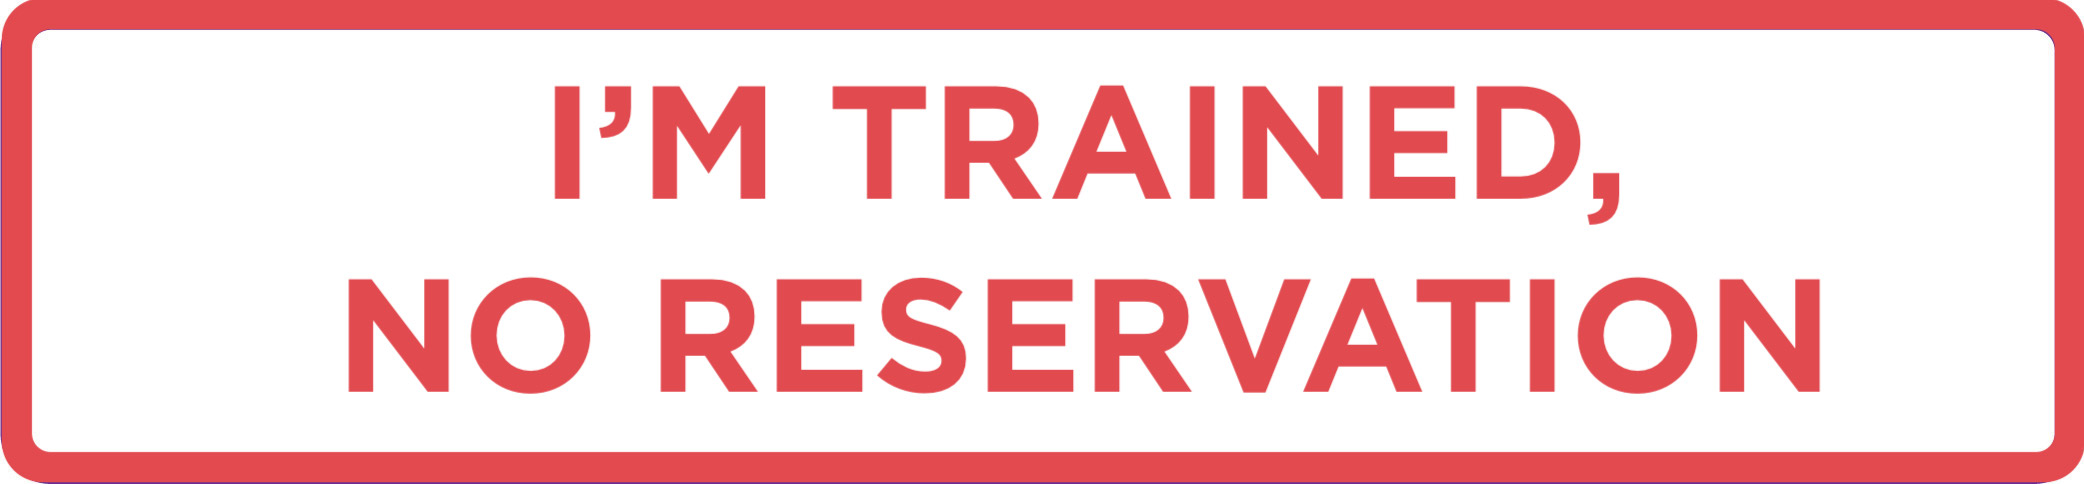 I'm trained, no reservation